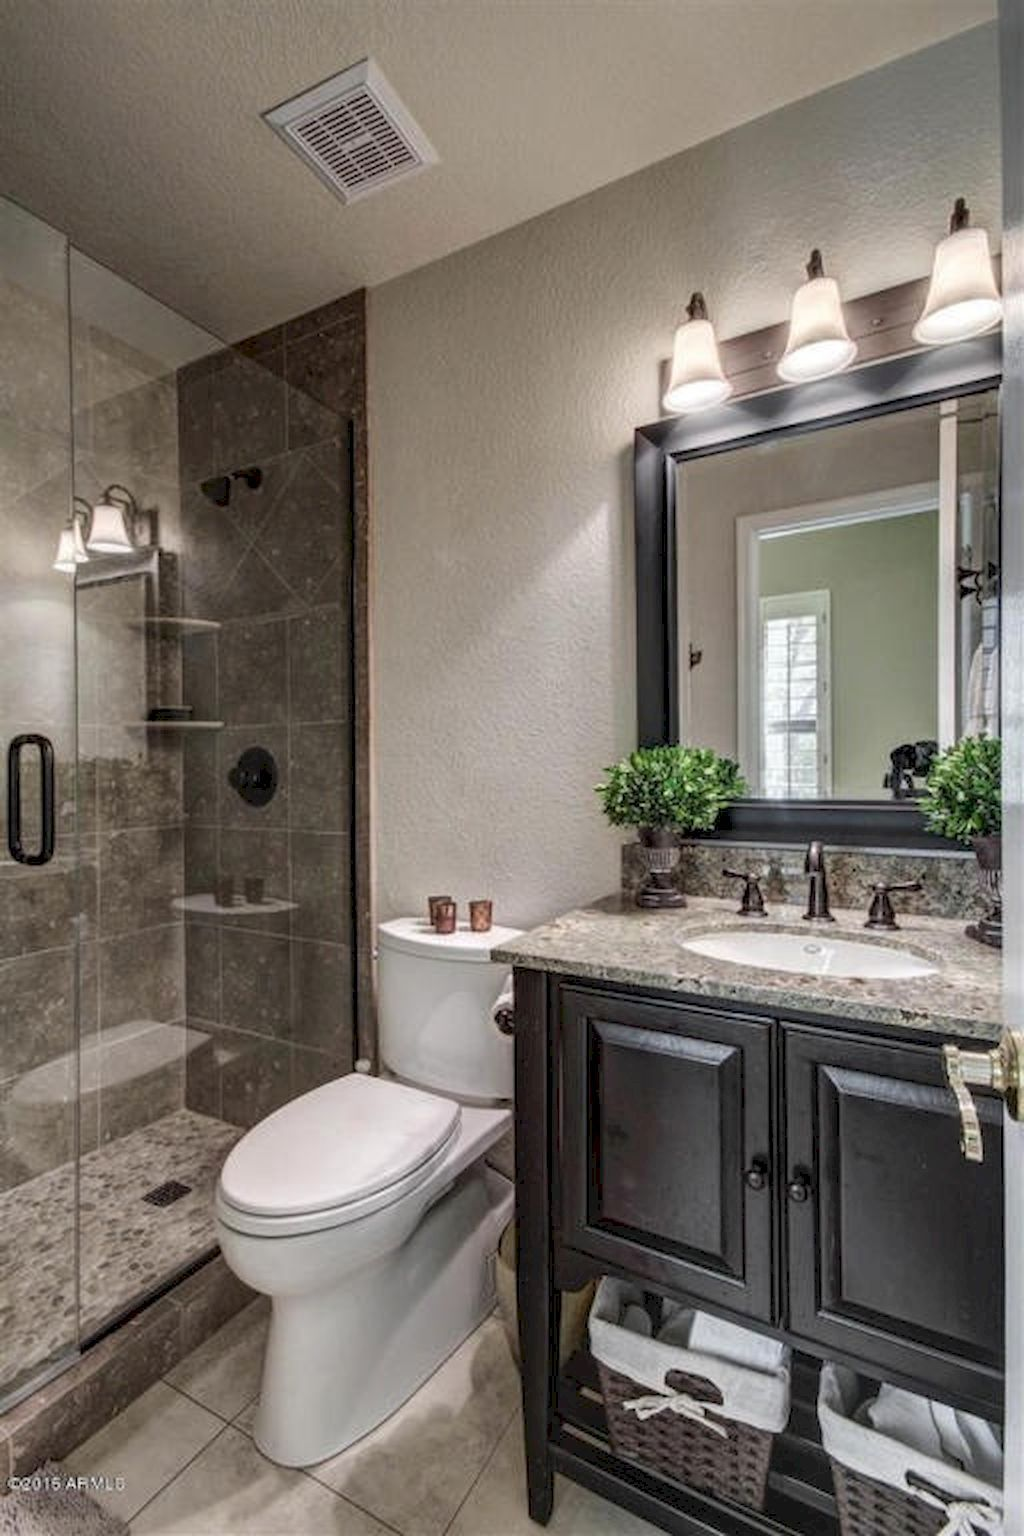 Cool Small Master Bathroom Remodel Ideas On A Budget 49 With Images Master Bathroom Makeover Bathroom Remodel Master Small Master Bathroom